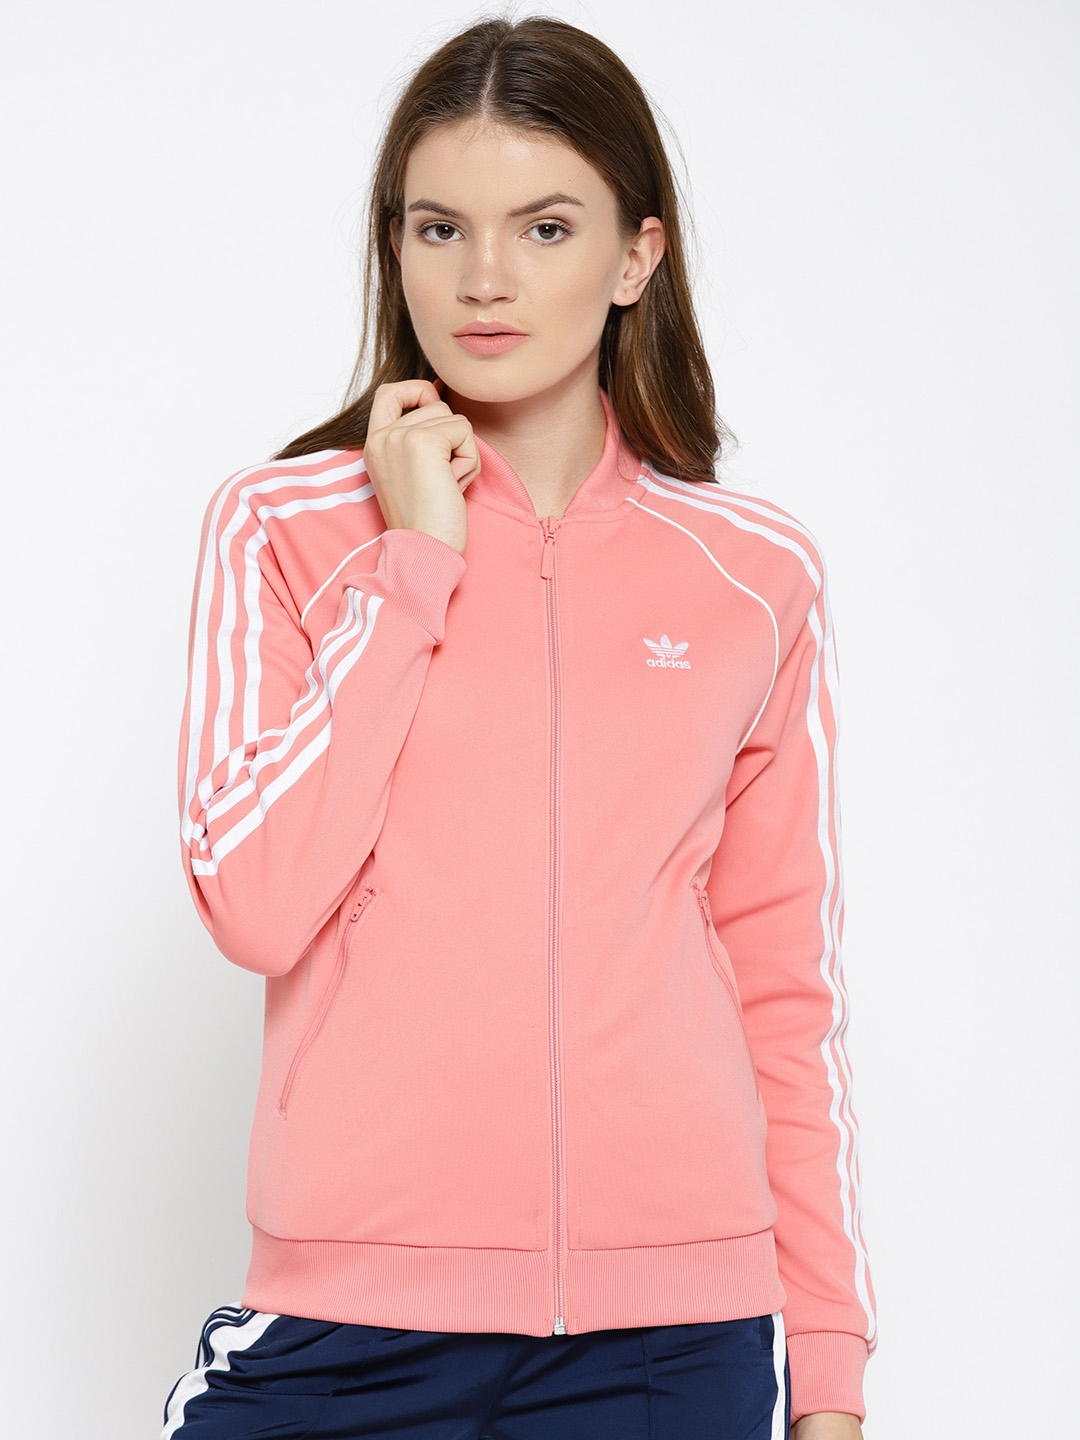 49c6580fad19 Buy ADIDAS Originals Women Pink Solid SST Track Jacket - Jackets for ...